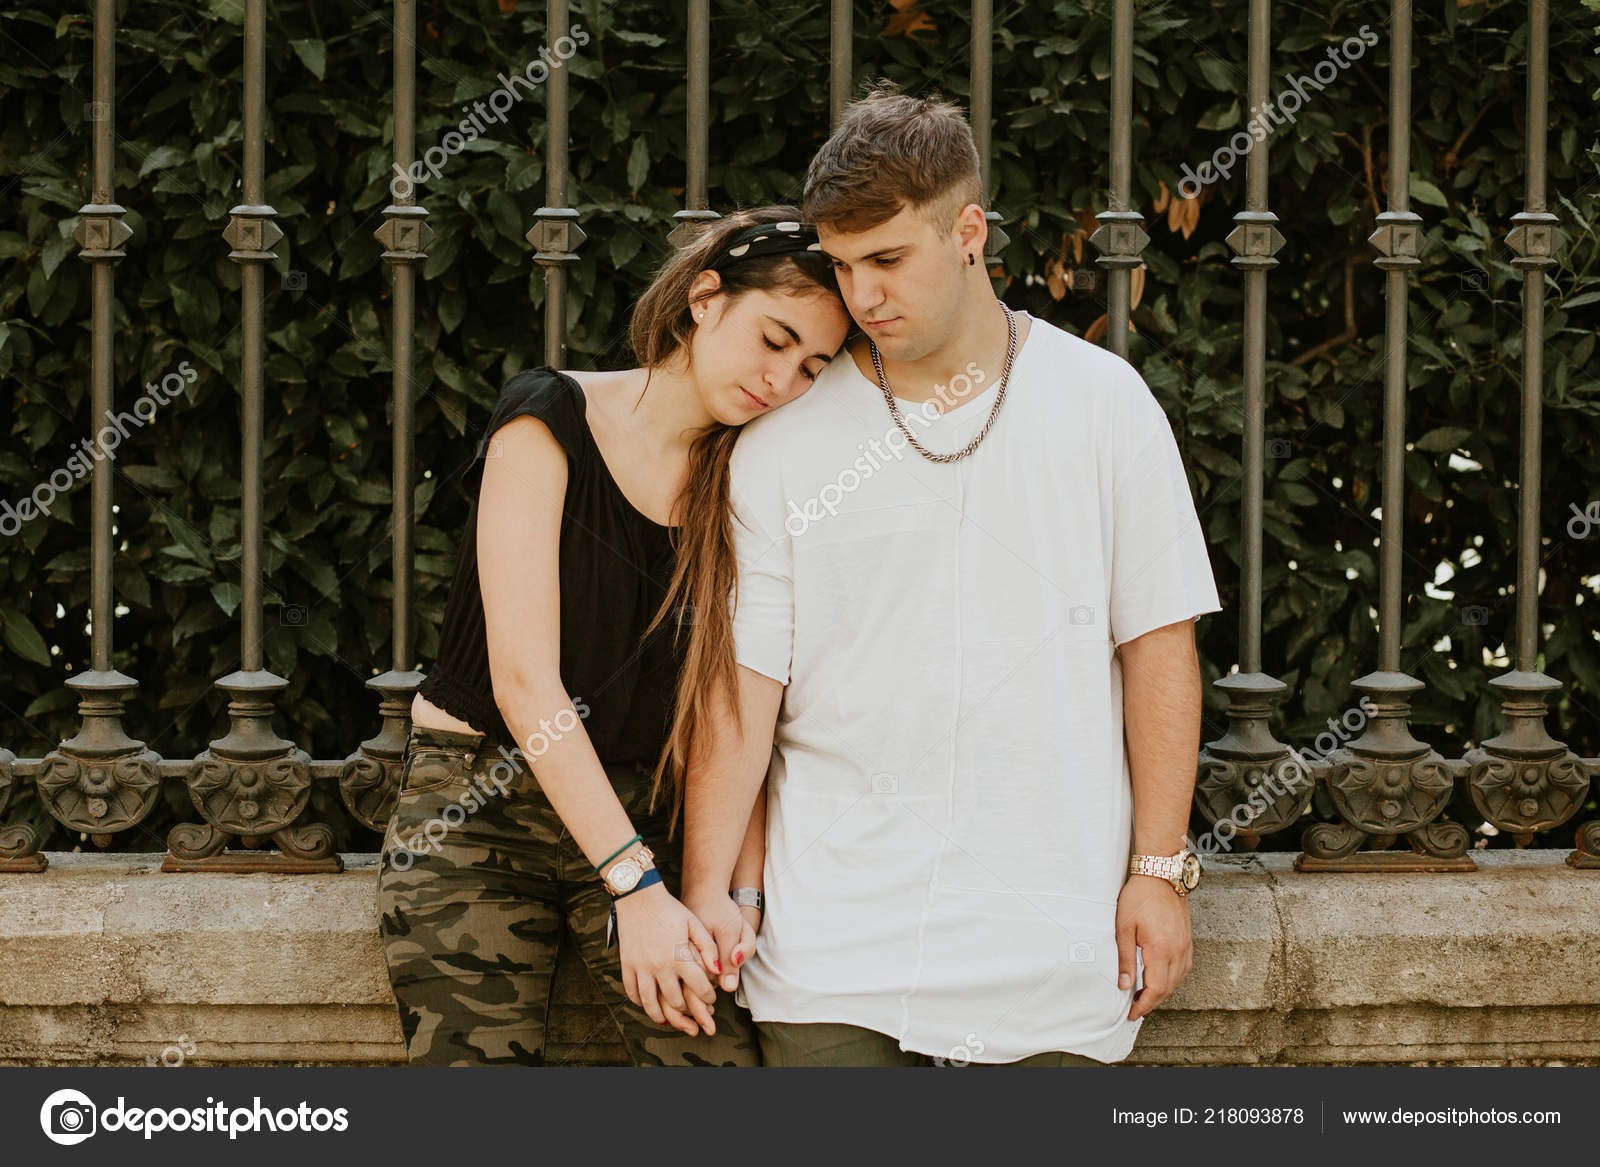 Young Couple Teenagers Having Relationship Difficulties Stock Photo C Marcoscastillo 218093878